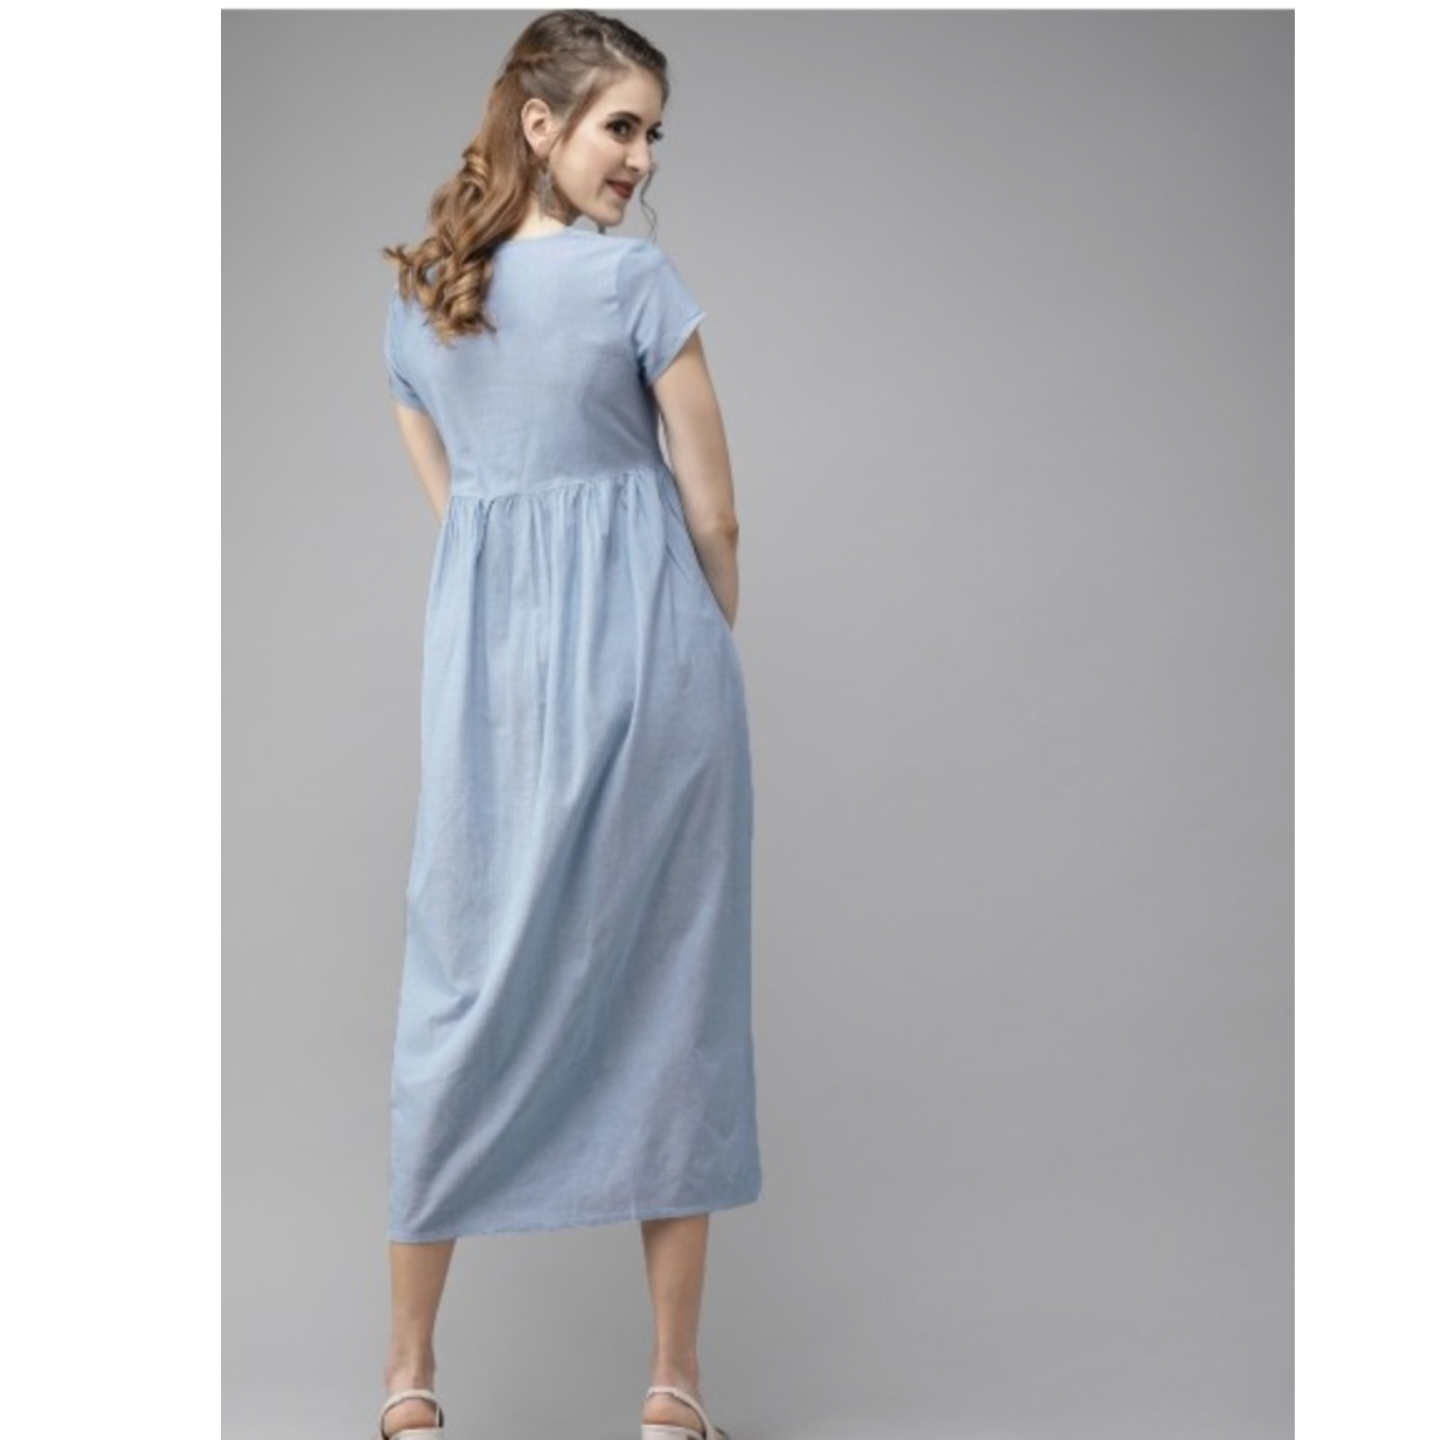 Blue Solid Fit And Flare Dress With Embroidery